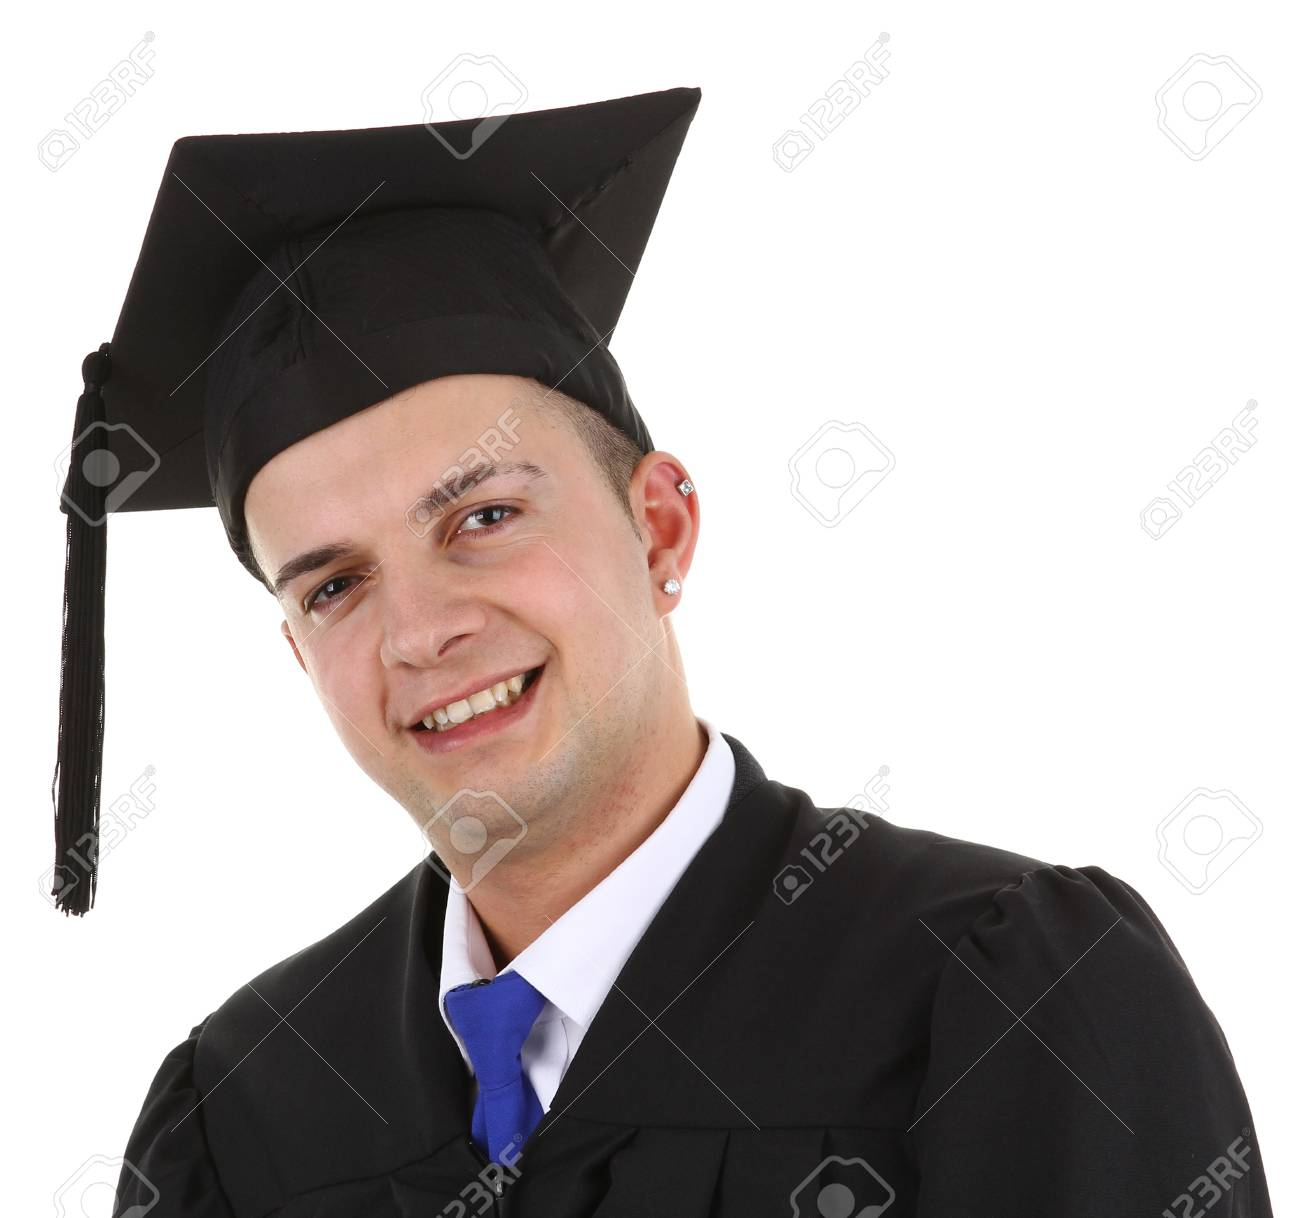 A graduate smiling, isolated on white Stock Photo - 12504301